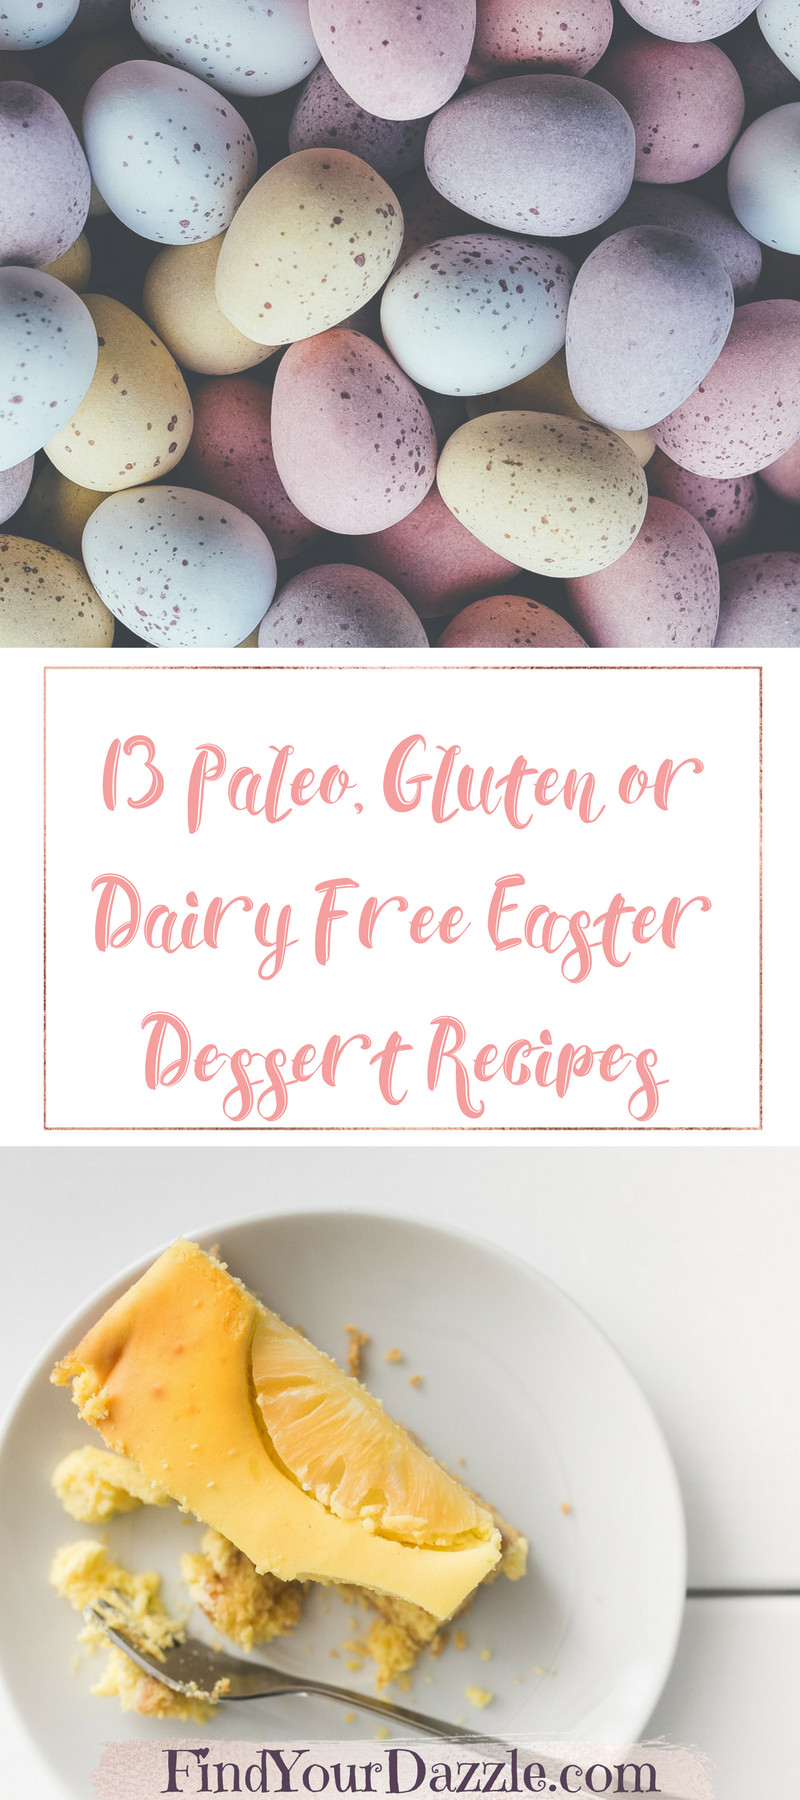 Gluten And Dairy Free Desserts To Buy  13 Paleo Gluten or Dairy Free Easter Dessert Recipes